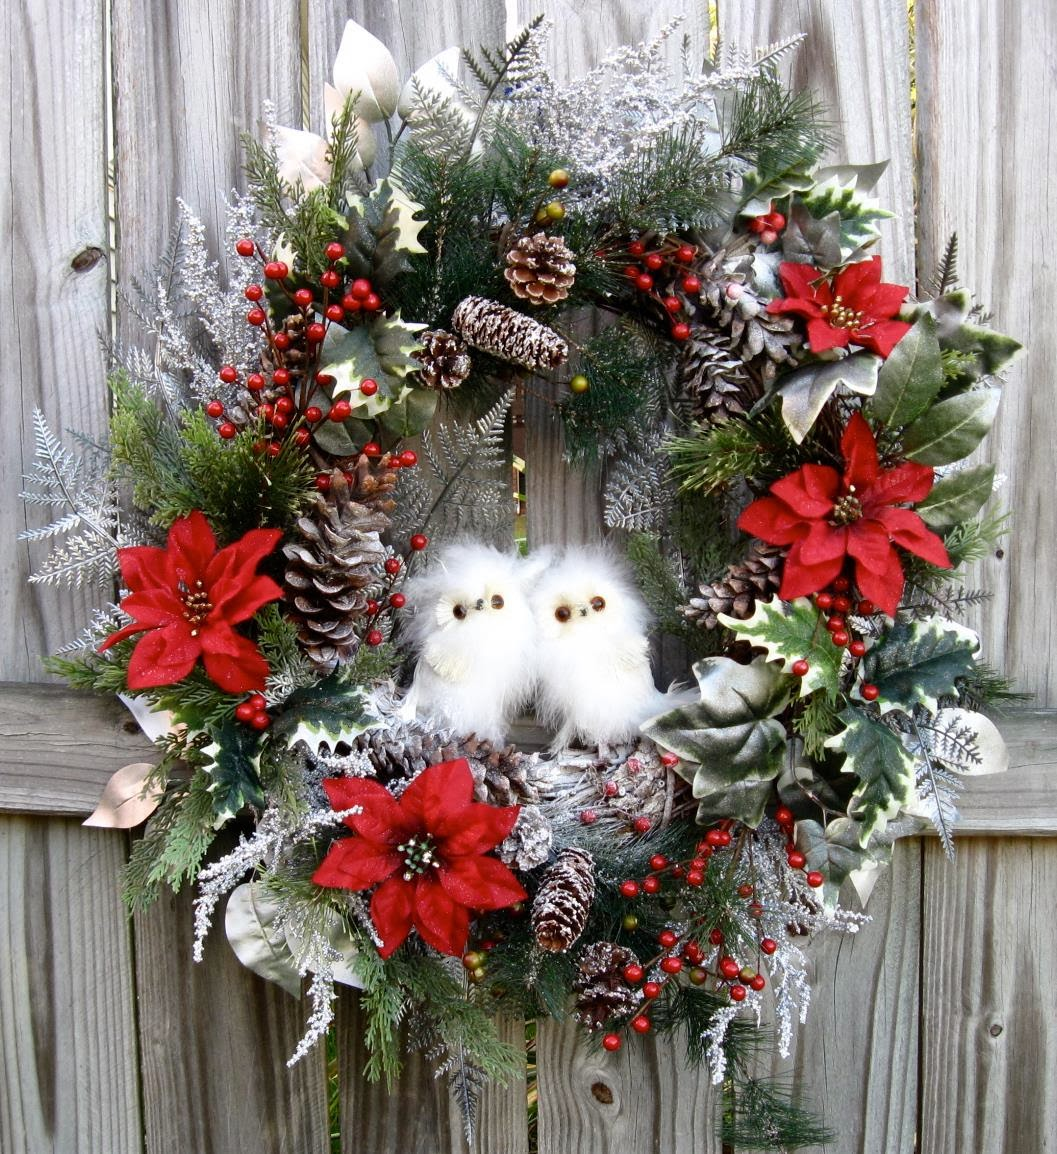 Woodland Winter Baby Snow Owls Christmas Pre-lit Wreath